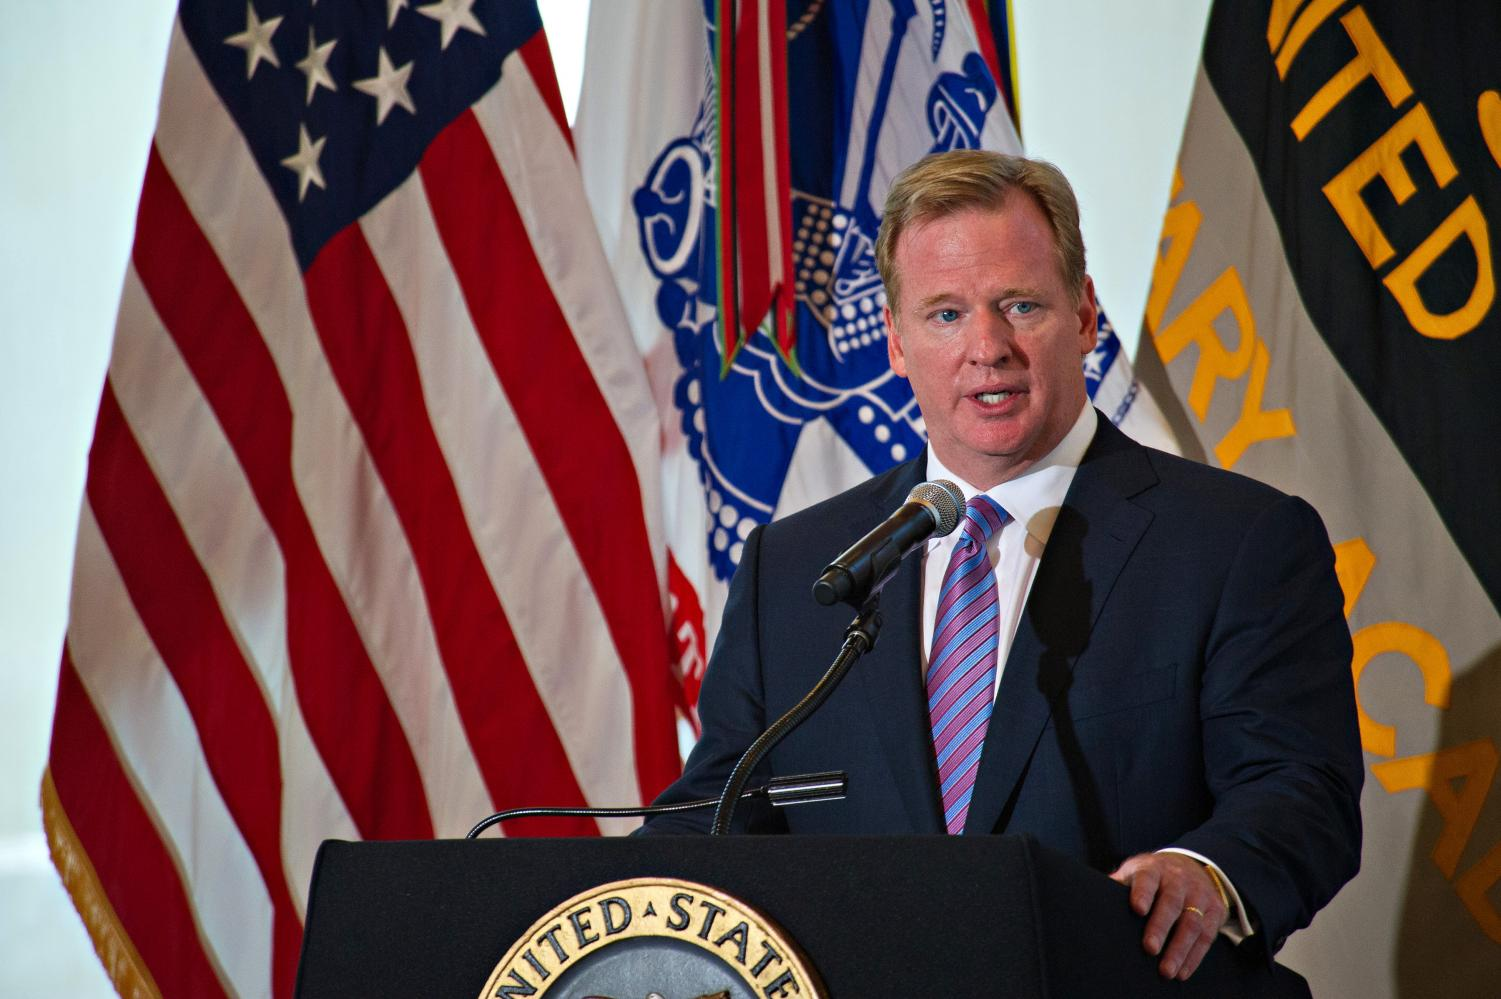 Commissioner Roger Goodell delivers remarks during an event at the U.S. Military Academy at West Point, N.Y. (SSG Teddy Wade)